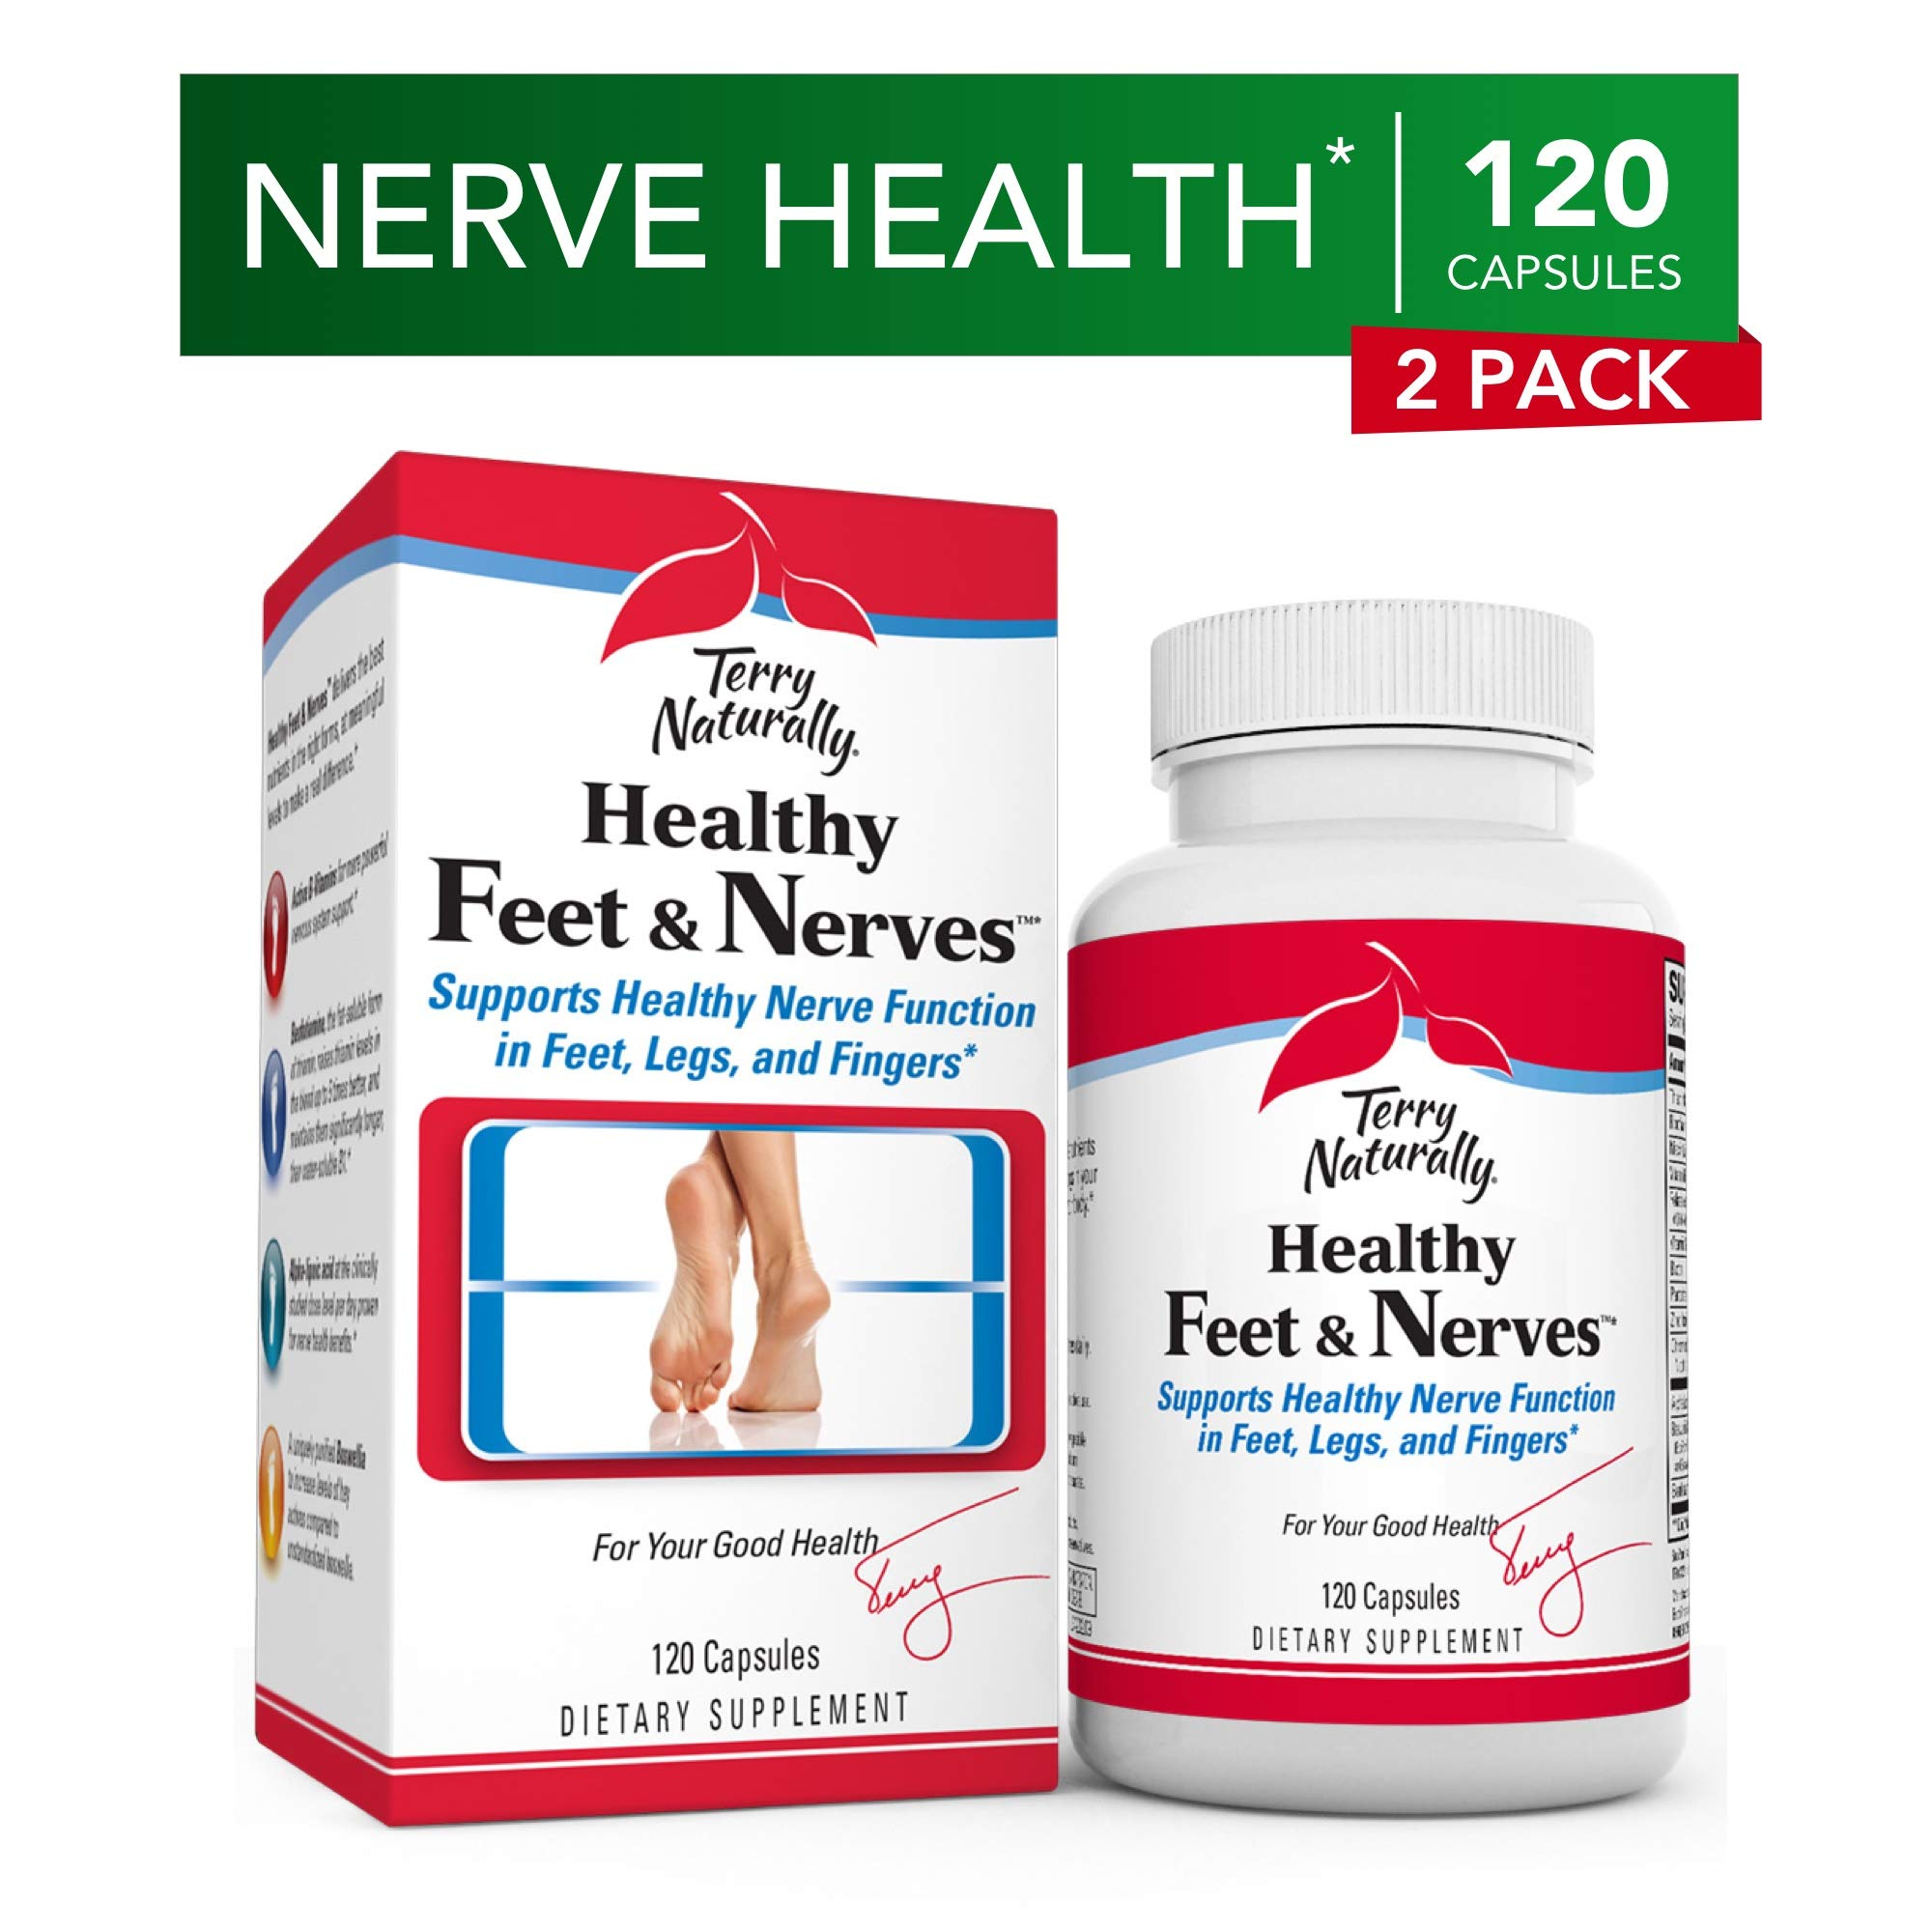 Terry Naturally Healthy Feet & Nerves (2 Pack) - 120 Vegan Capsules - Nerve Function Support Supplement, Contains B Vitamins & Boswellia - Non-GMO, Gluten-Free - 120 Total Servings